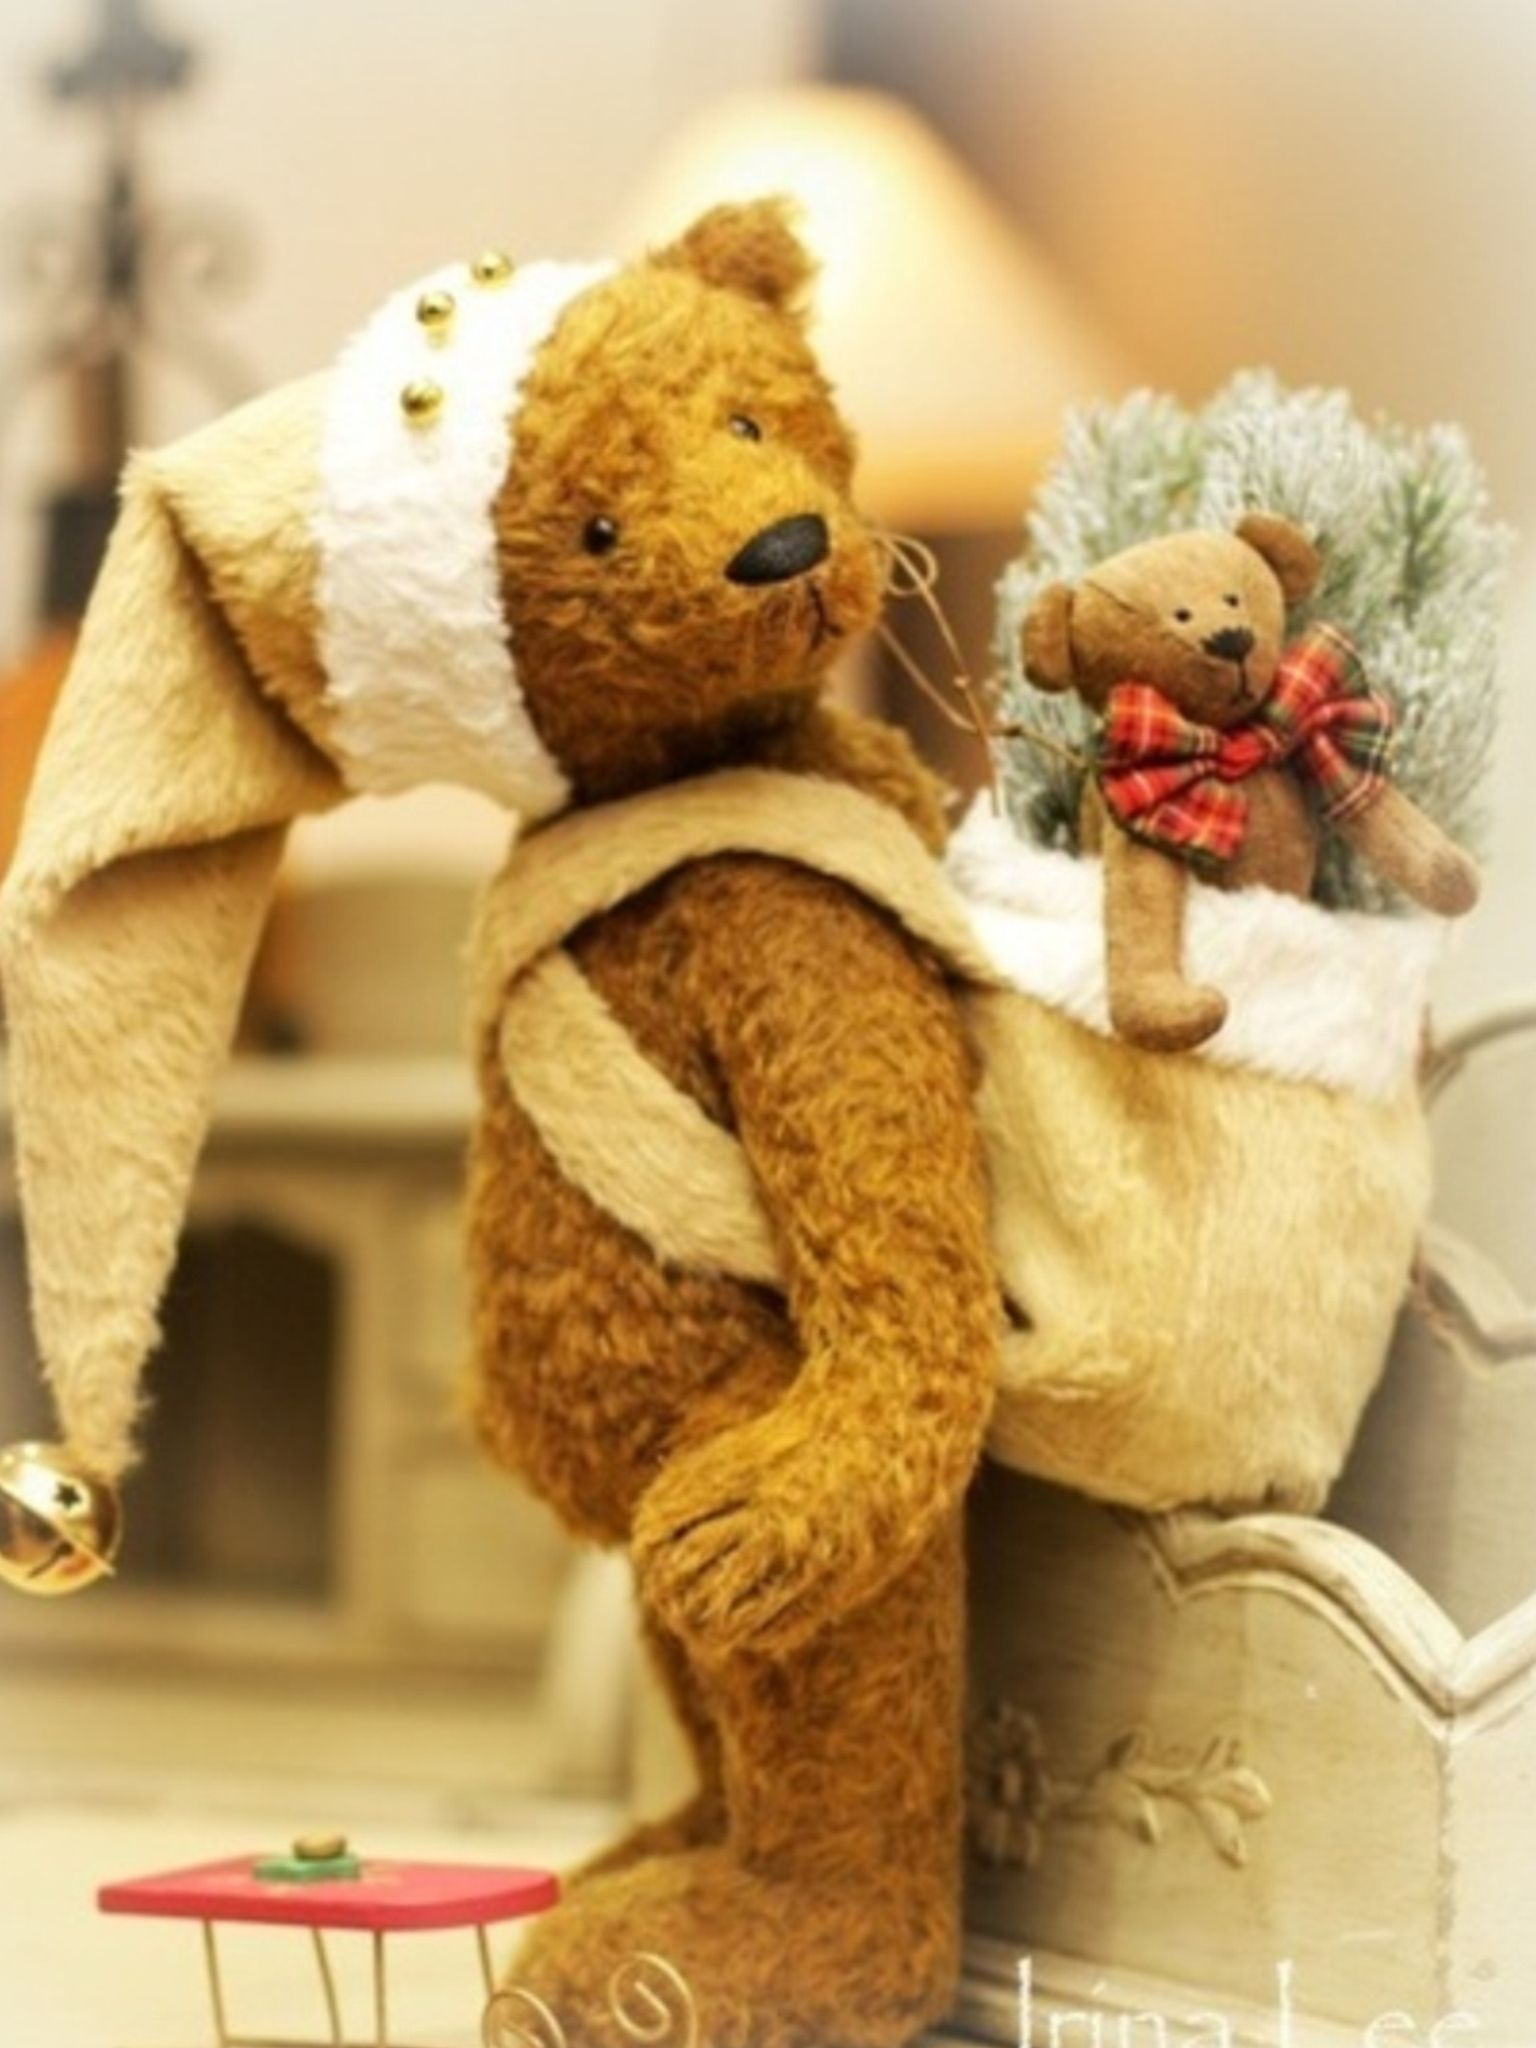 Teddy Weihnachten.Beary Merry Christmas Bear Itsnotchristmaswithout Teddy